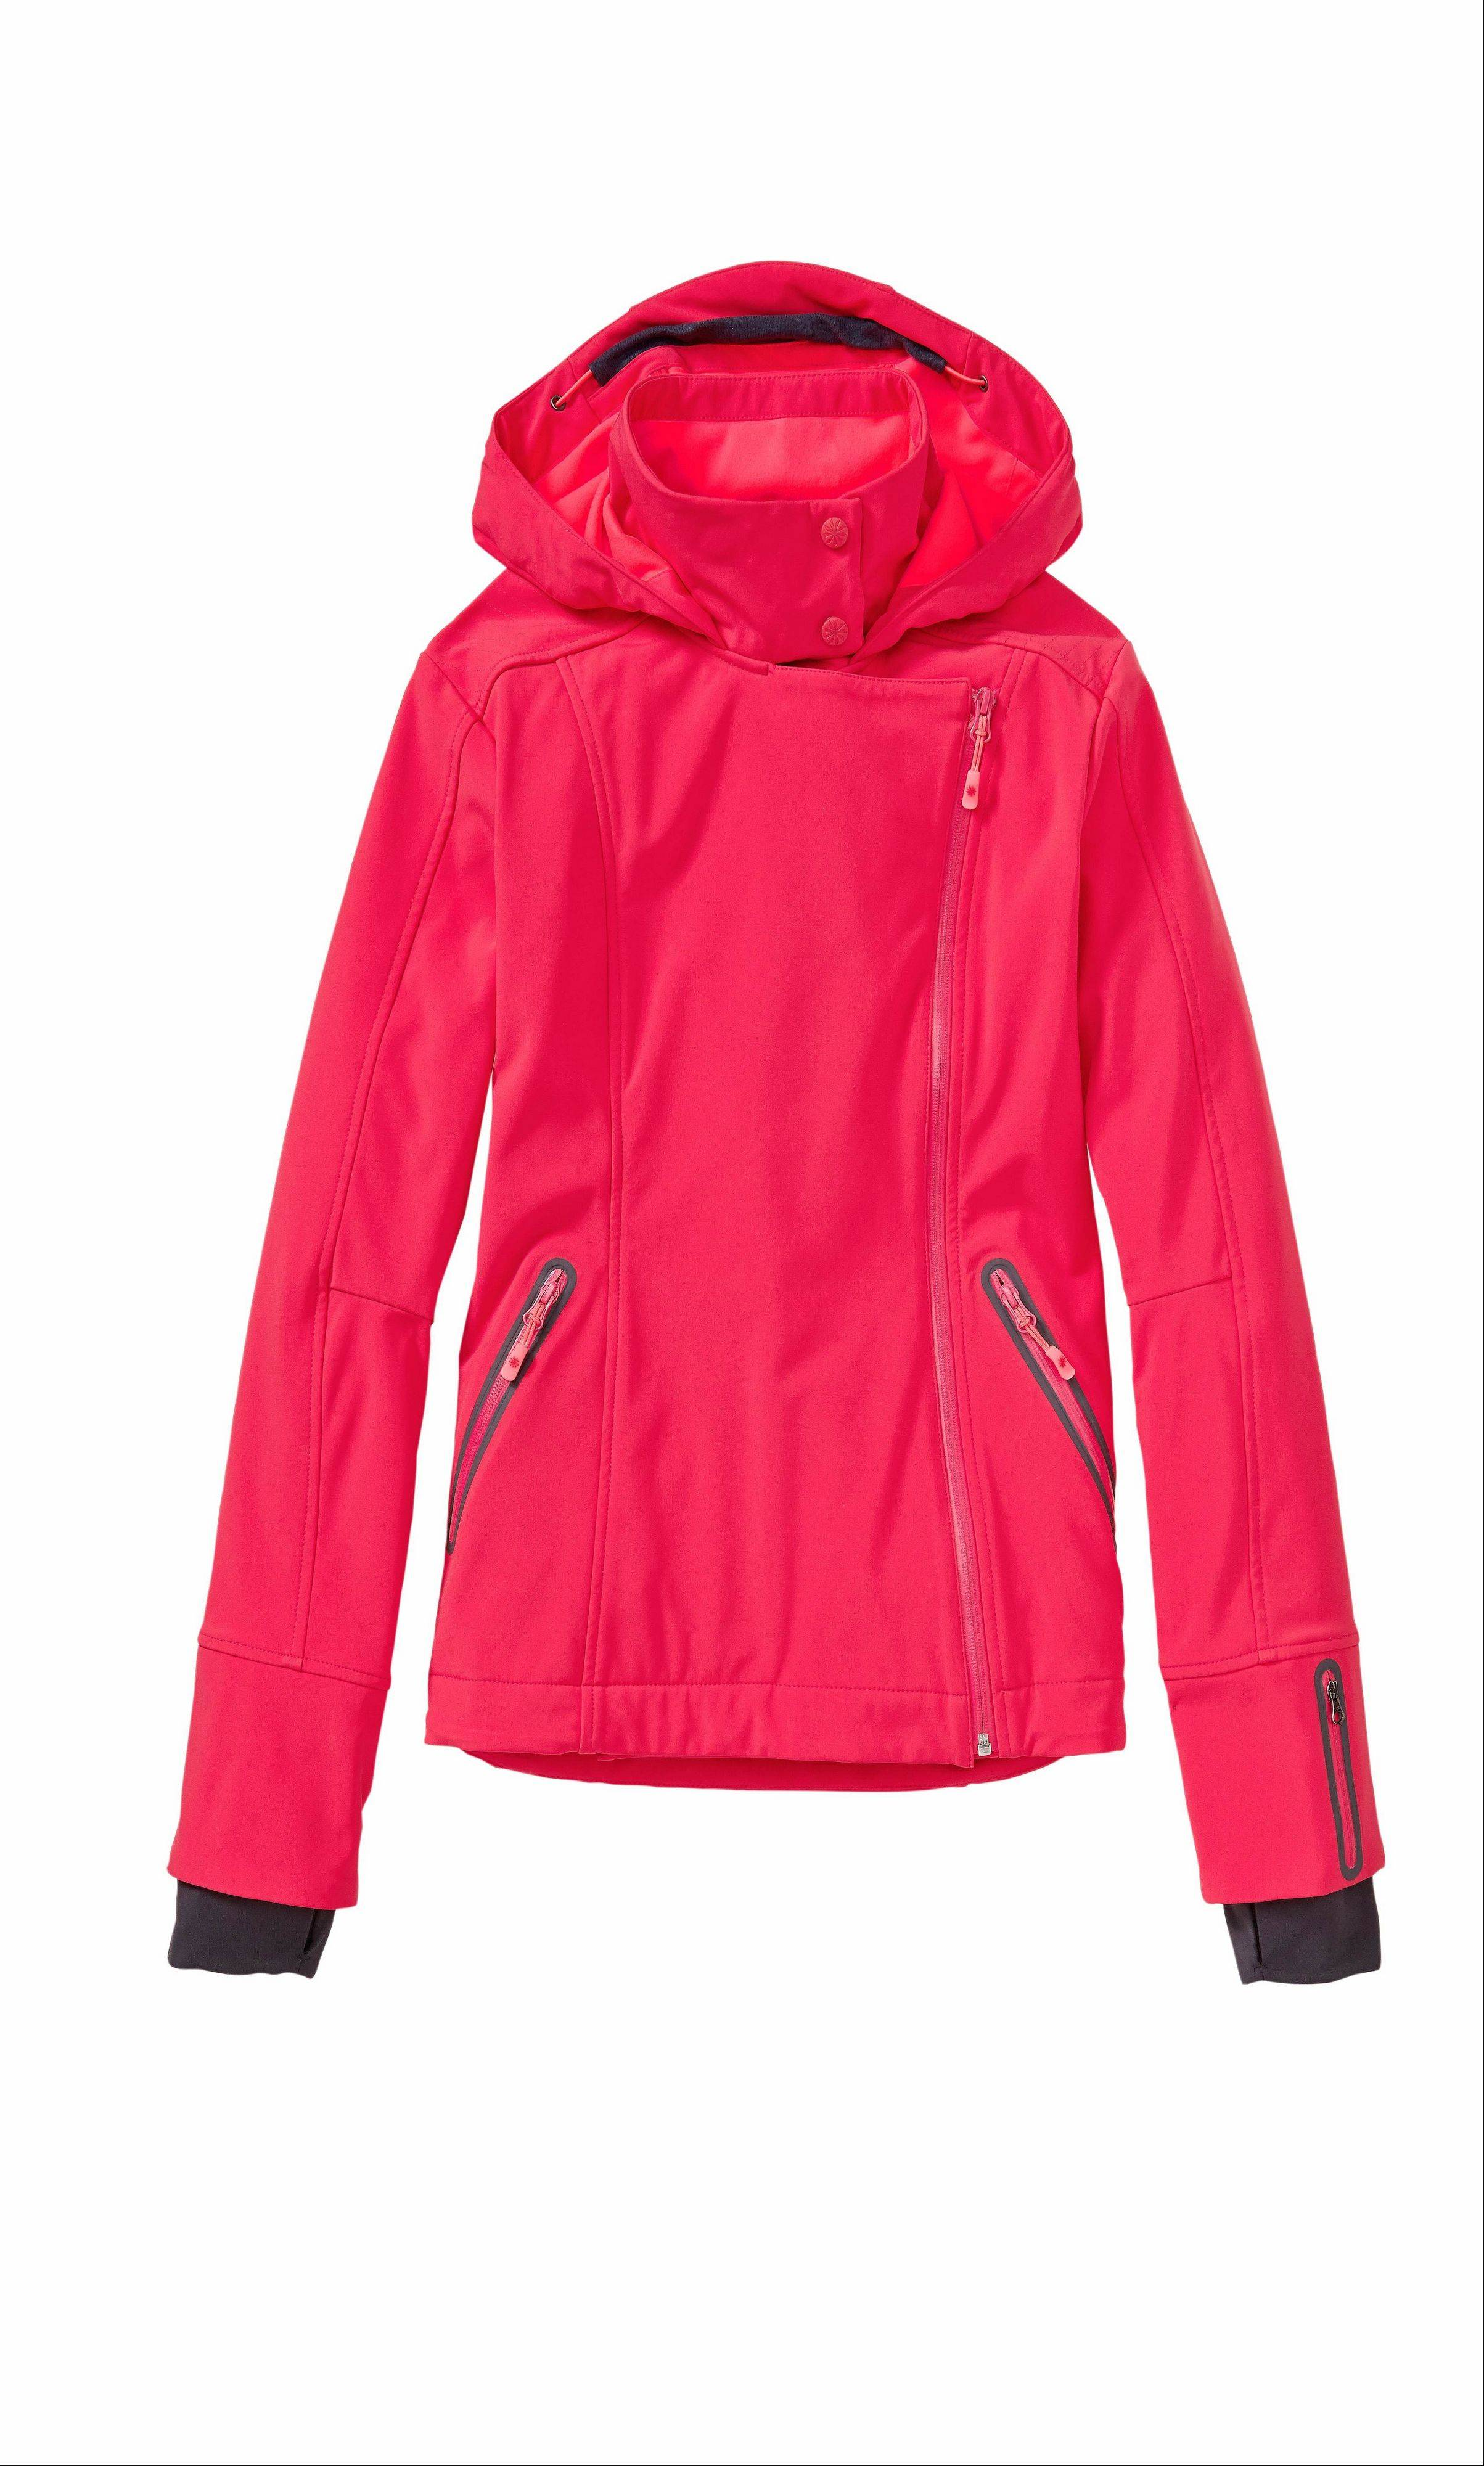 The sprint red/coralade Sun Valley Ski Jacket is one of Athleta's bright offerings this season.